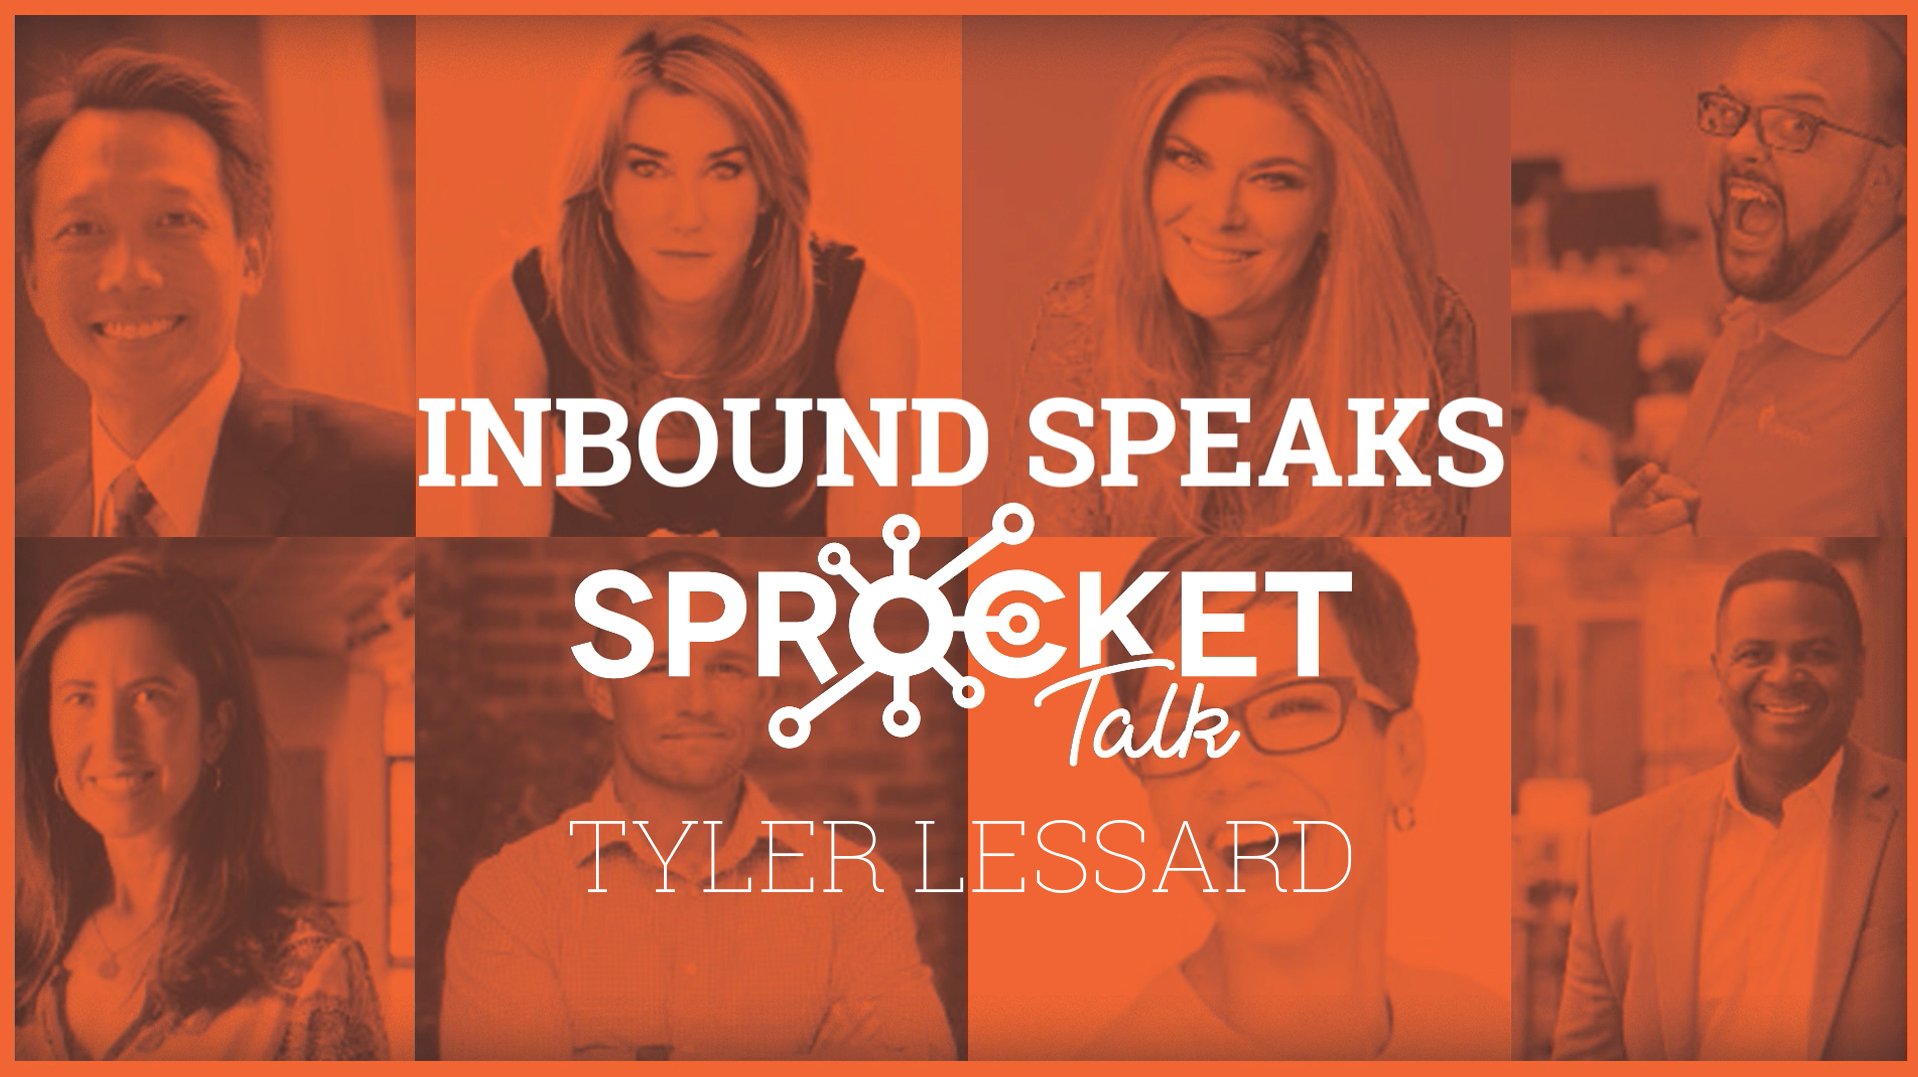 Tyler Lessard Helpful, Human, and Trustworthy: Using Video to Master the Art of Inbound Selling #Inbound19